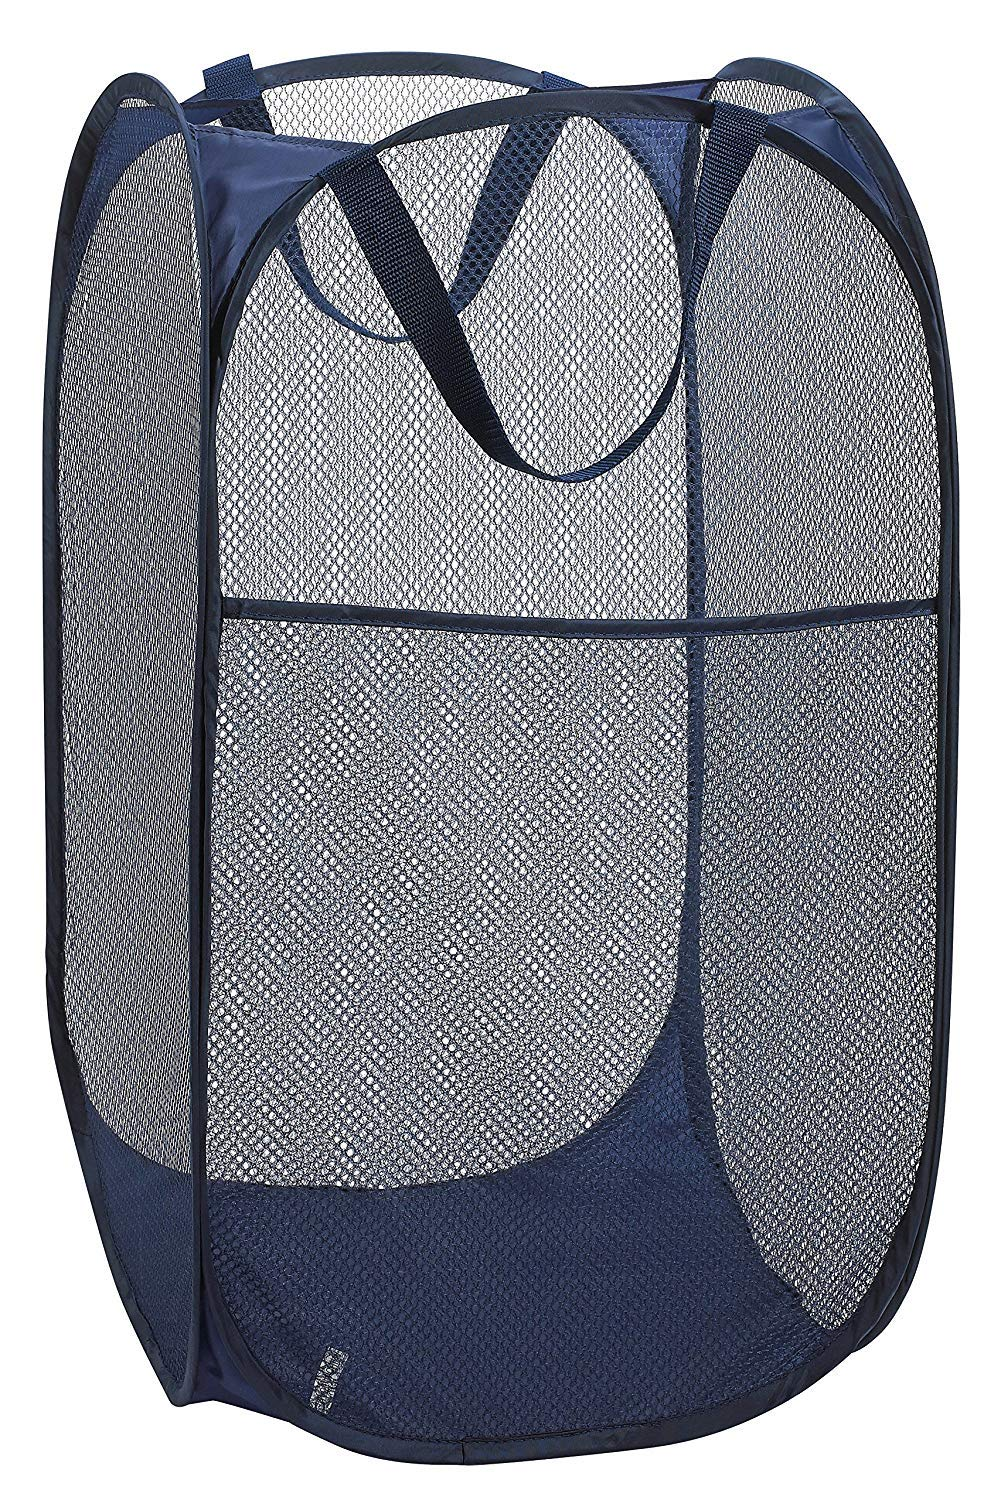 Mesh Popup Laundry Hamper - Portable, Durable Handles, Collapsible for Storage and Easy to Open. Folding Pop-Up Clothes Hampers are Great for The Kids Room, College Dorm or Travel. 1 GREAT FOR HOME OR TRAVEL: Use as a pop-up laundry hamper, toy basket or fold it flat for easy packing when on the go. STURDY MESH CONSTRUCTION: Durable mesh material allows air to circulate in order to eliminate moisture and odors. STORES FLAT: Twist the flexible lightweight frame on this pop up hamper to fold it flat for convenient storage.